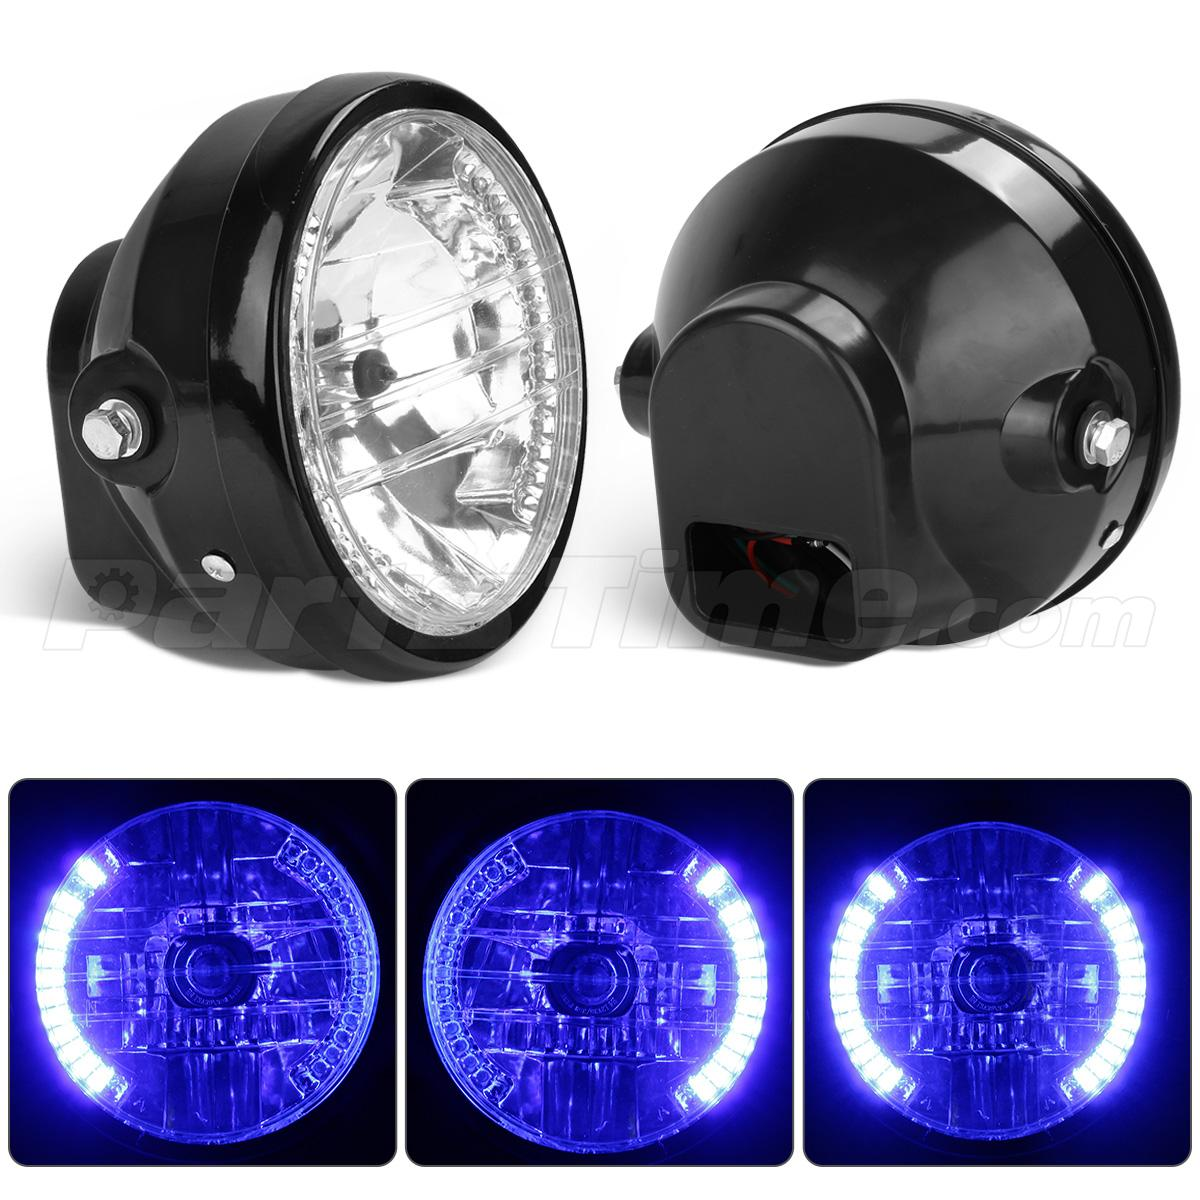 7 motorcycle headlight blue led turn signal indicators for harley please be informed that installation instruction is not included professional installation is highly recommended sciox Image collections